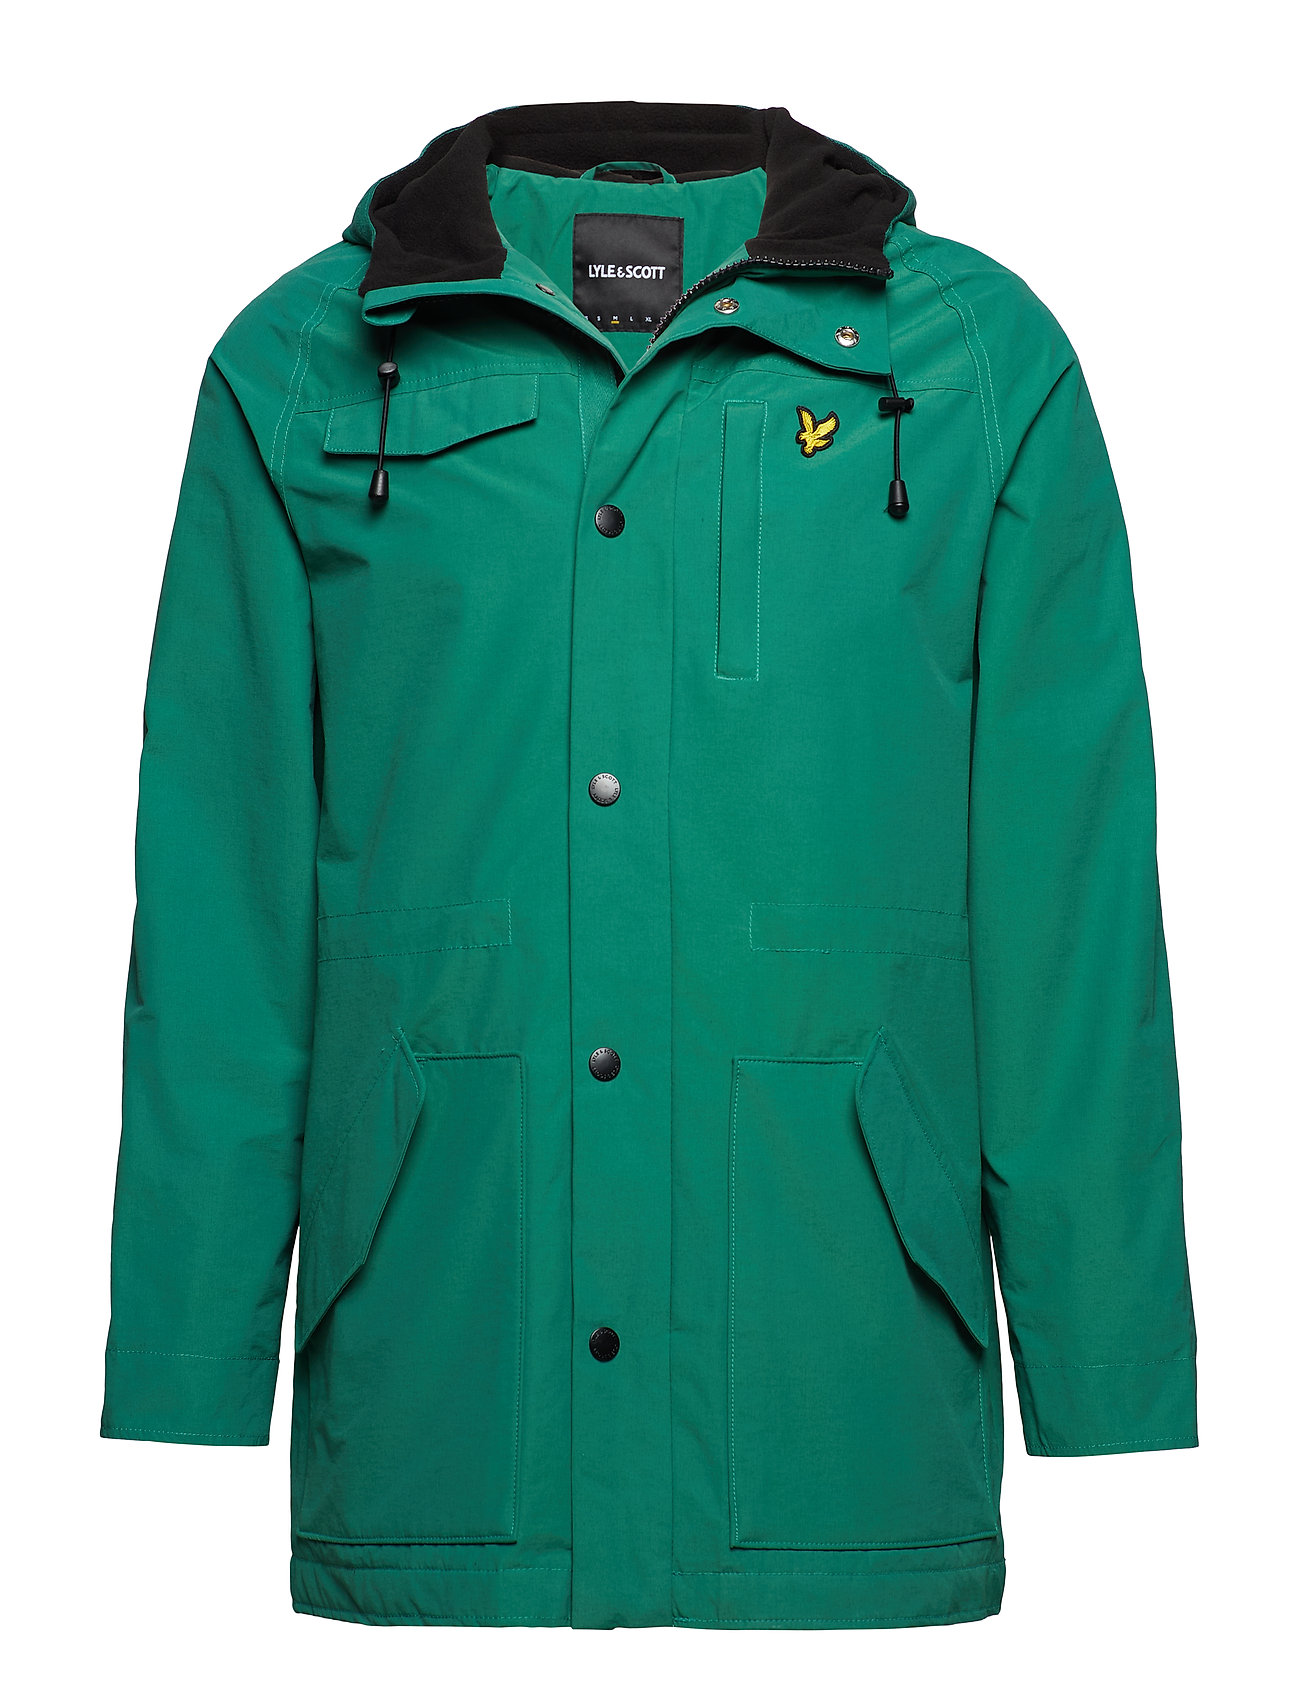 Lyle & Scott Microfleece Lined Parka - ALPINE GREEN